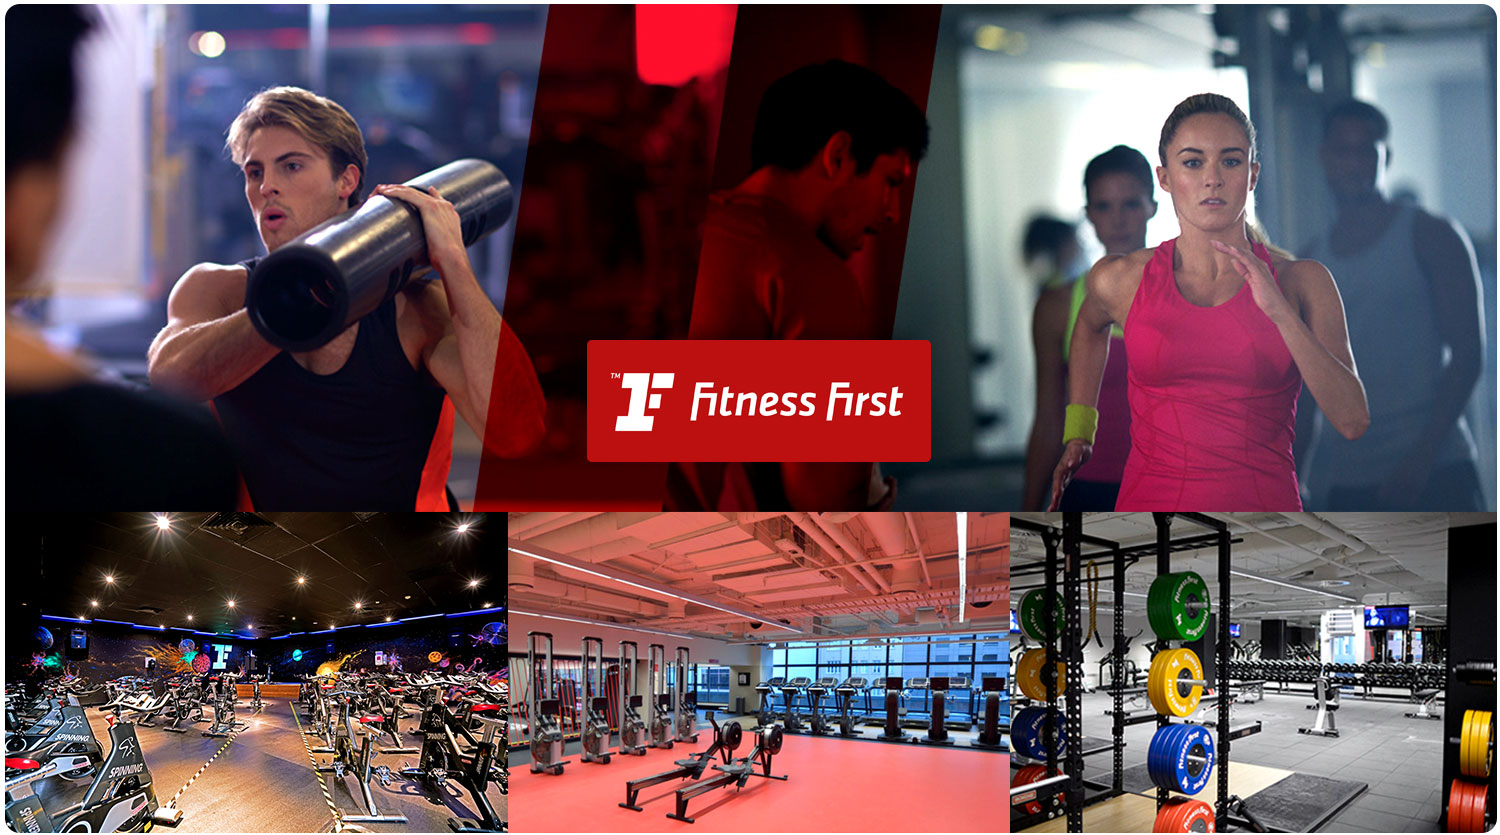 Start your Fitness Journey with Fitness First with only $14.95 for 14 days at Fitness First Wynnum QLD. Experience our first class gym and freestyle classes inc. Pilates, Yoga, HIIT, Les Mills and more. Take the first step with Fitness First Wynnum QLD.